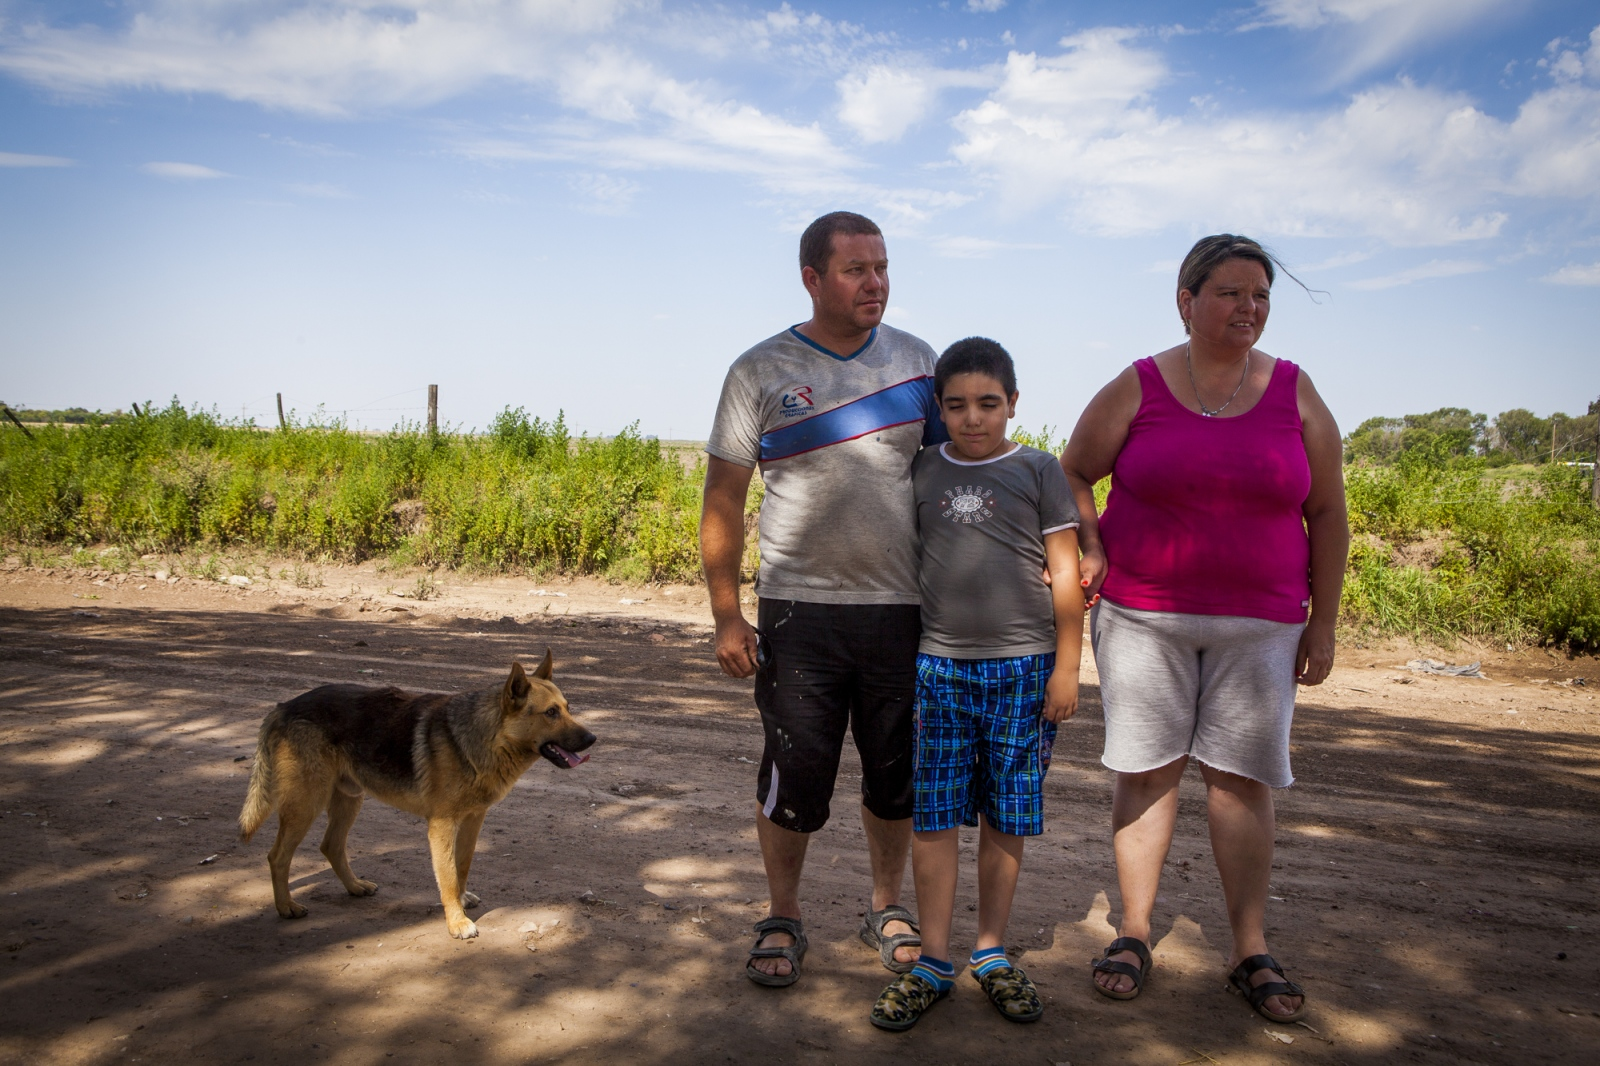 Claúdio Fuentes (34) and Antónia Alaris (36) with their son Axel David Fuentes (8) in front of the soy field that faces their home in Monte Maiz. Their daughter, Antonella Fuentes, was diagnosed with osteosarcoma, a cancerous bone tumor, at the age of 6. She died a few months later.  The cases of cancer grew exponentially in the area since the introduction of glyphosate on the soy cultivation.  707 Cancer cases per 100,000 people were register by health researchers in the core area of soybean cultivation. These are three times as many  as the national average.